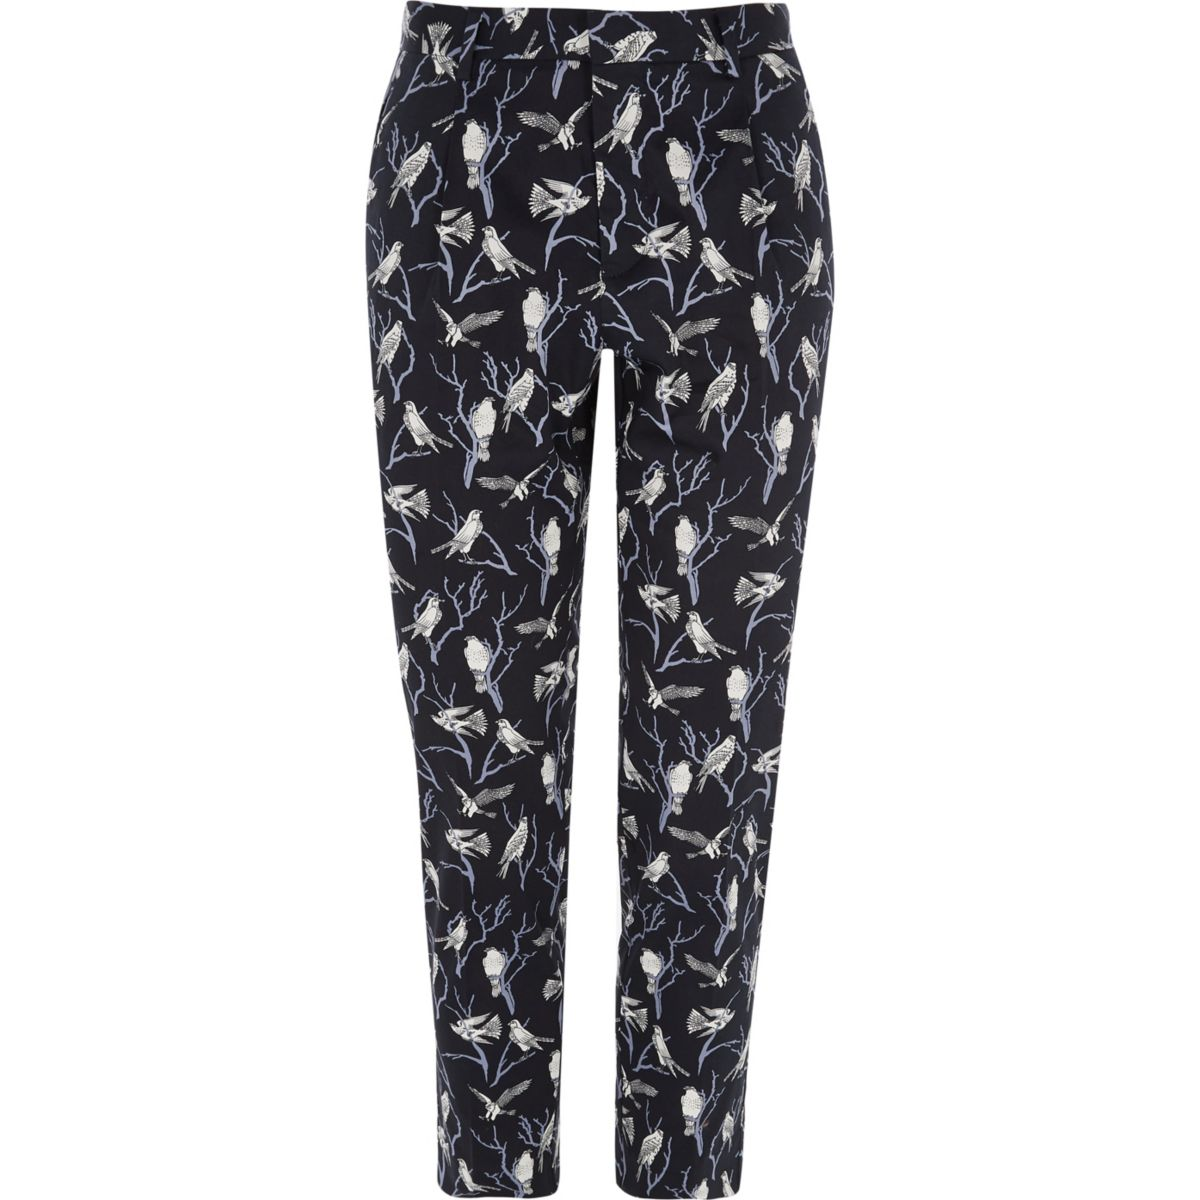 Jack & Jones Premium navy bird print pants